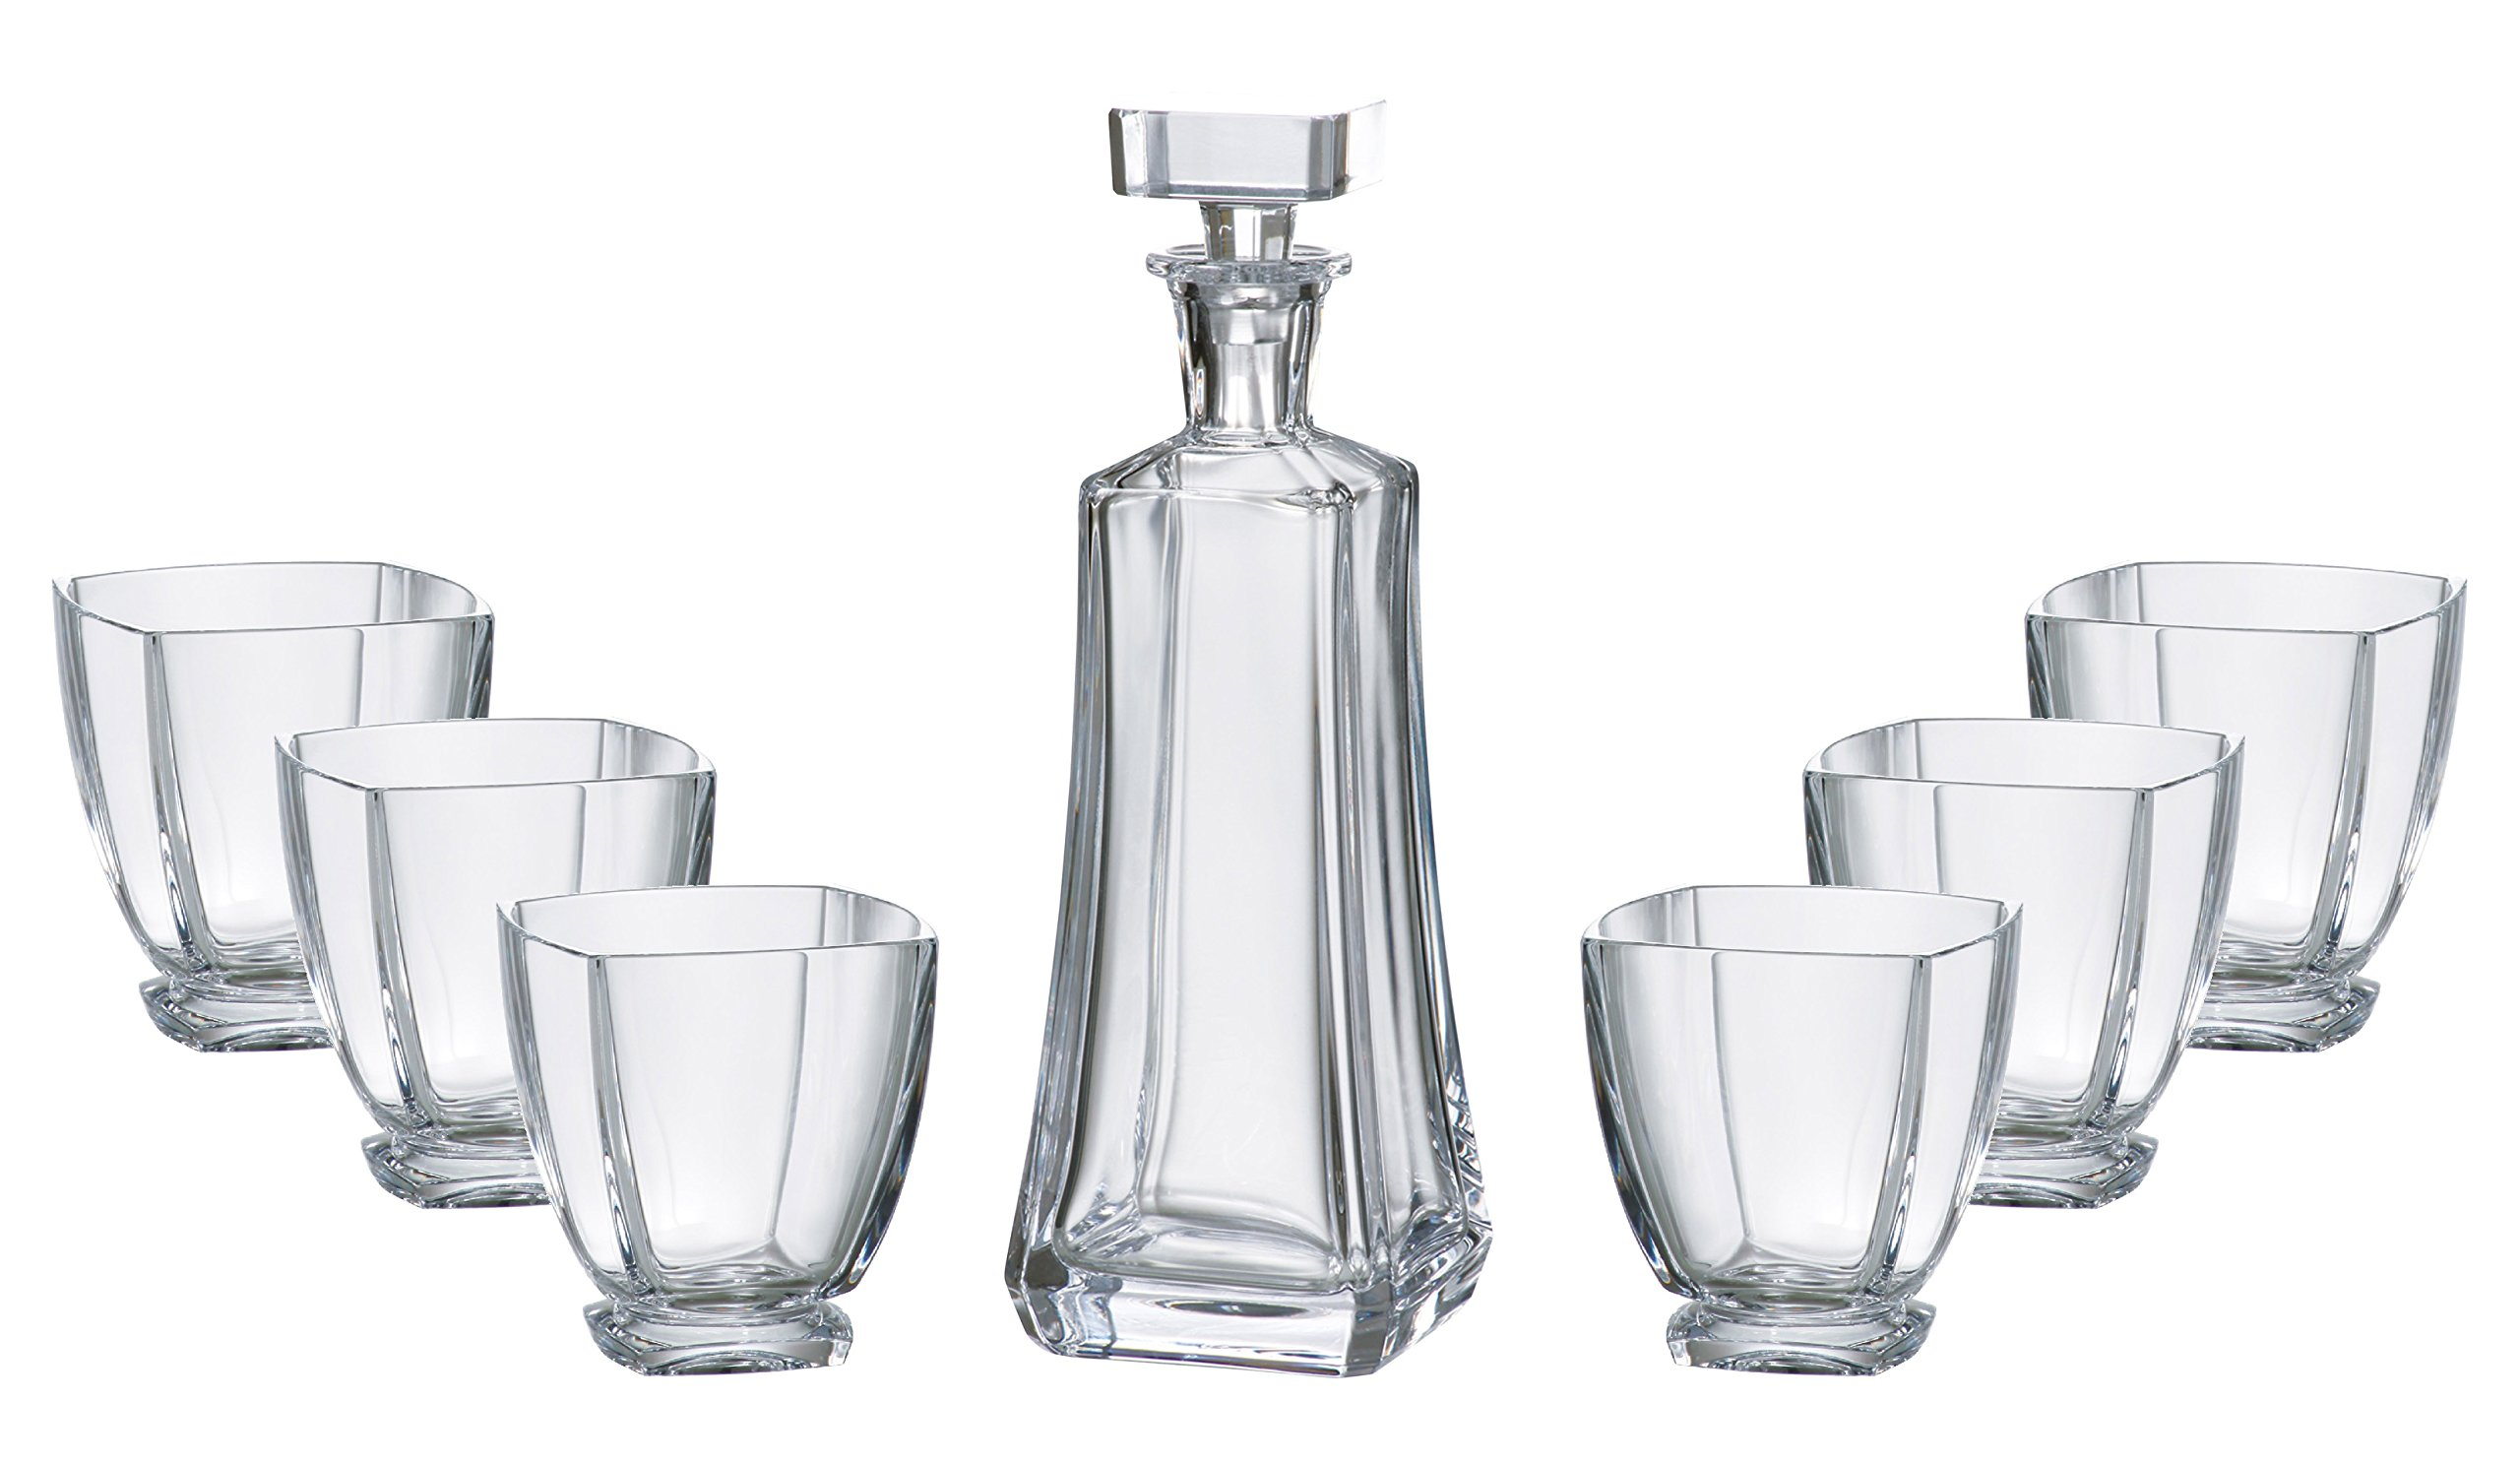 Barski - European Quality - 7 Piece Bar Set - for Whiskey - Wine - Liquer - Includes - 25 oz. Decanter - 6 pcs of 10.75 oz. Double OF Tumblers - Lead Free Crystalline - Gift Boxed - Made in Europe